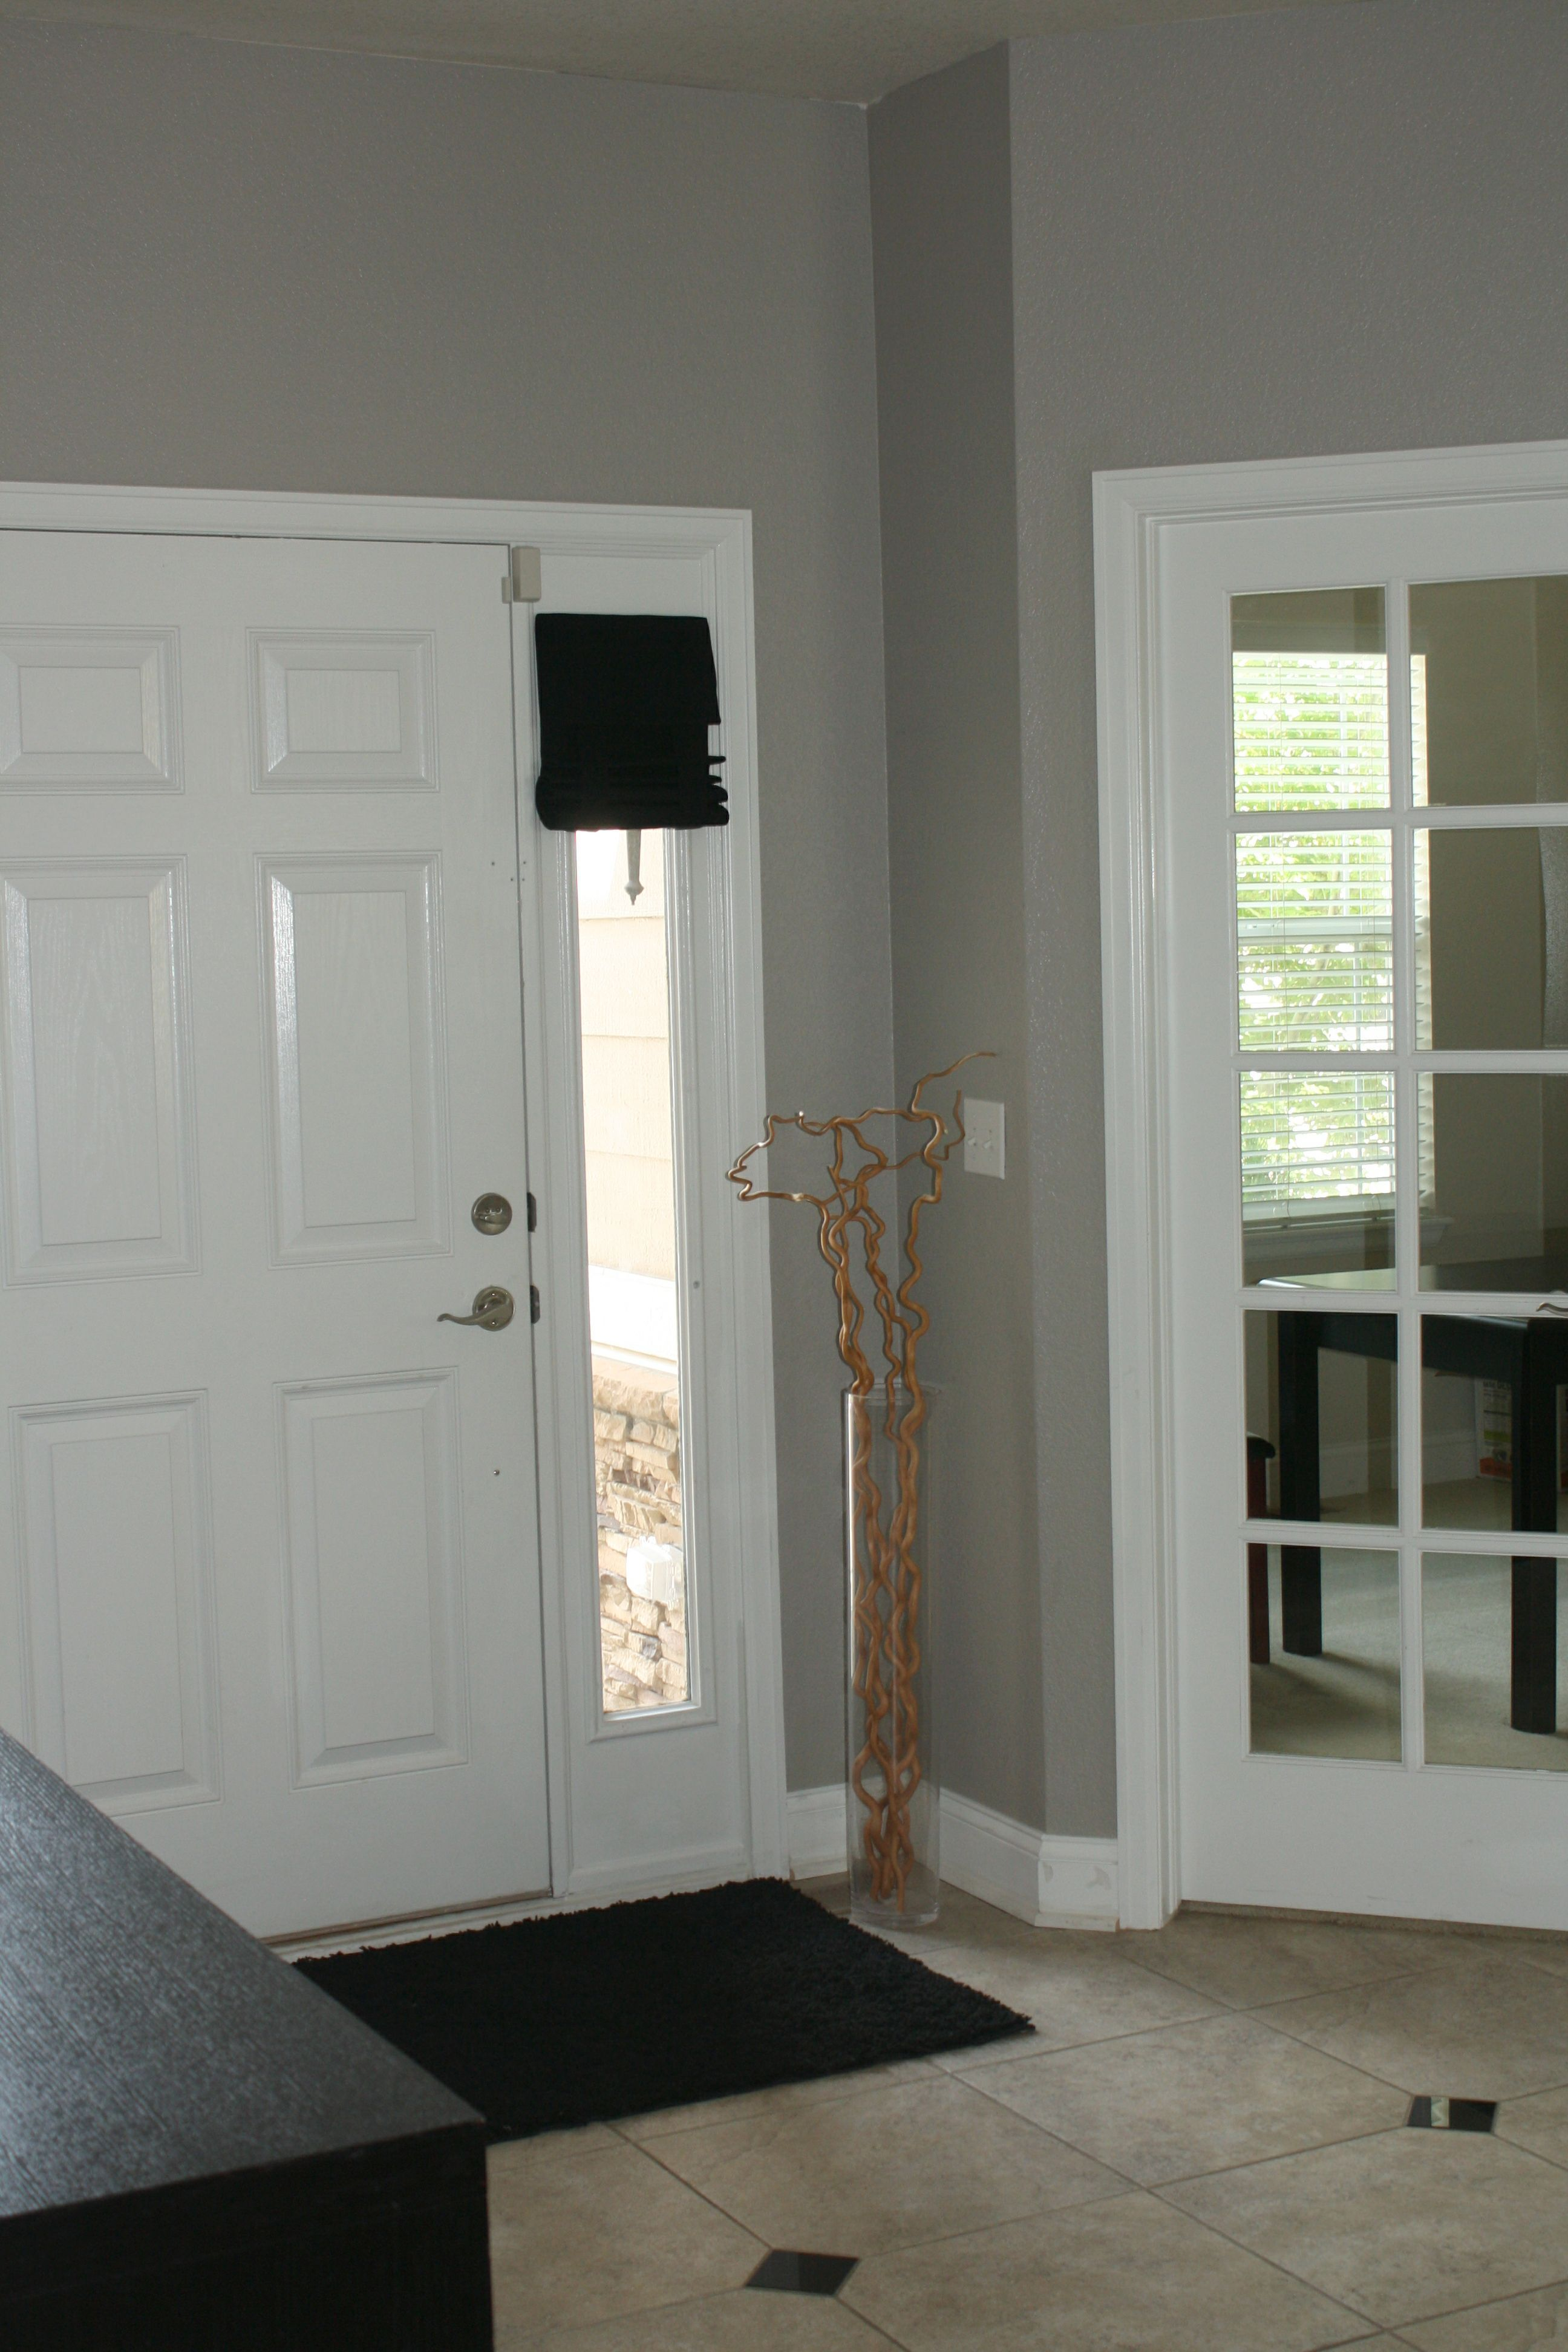 Side Light Curtains Provide Light Control And Privacy When Need On Top Of Adding A Nice Front Door Side Windows Small Window Curtains Front Doors With Windows